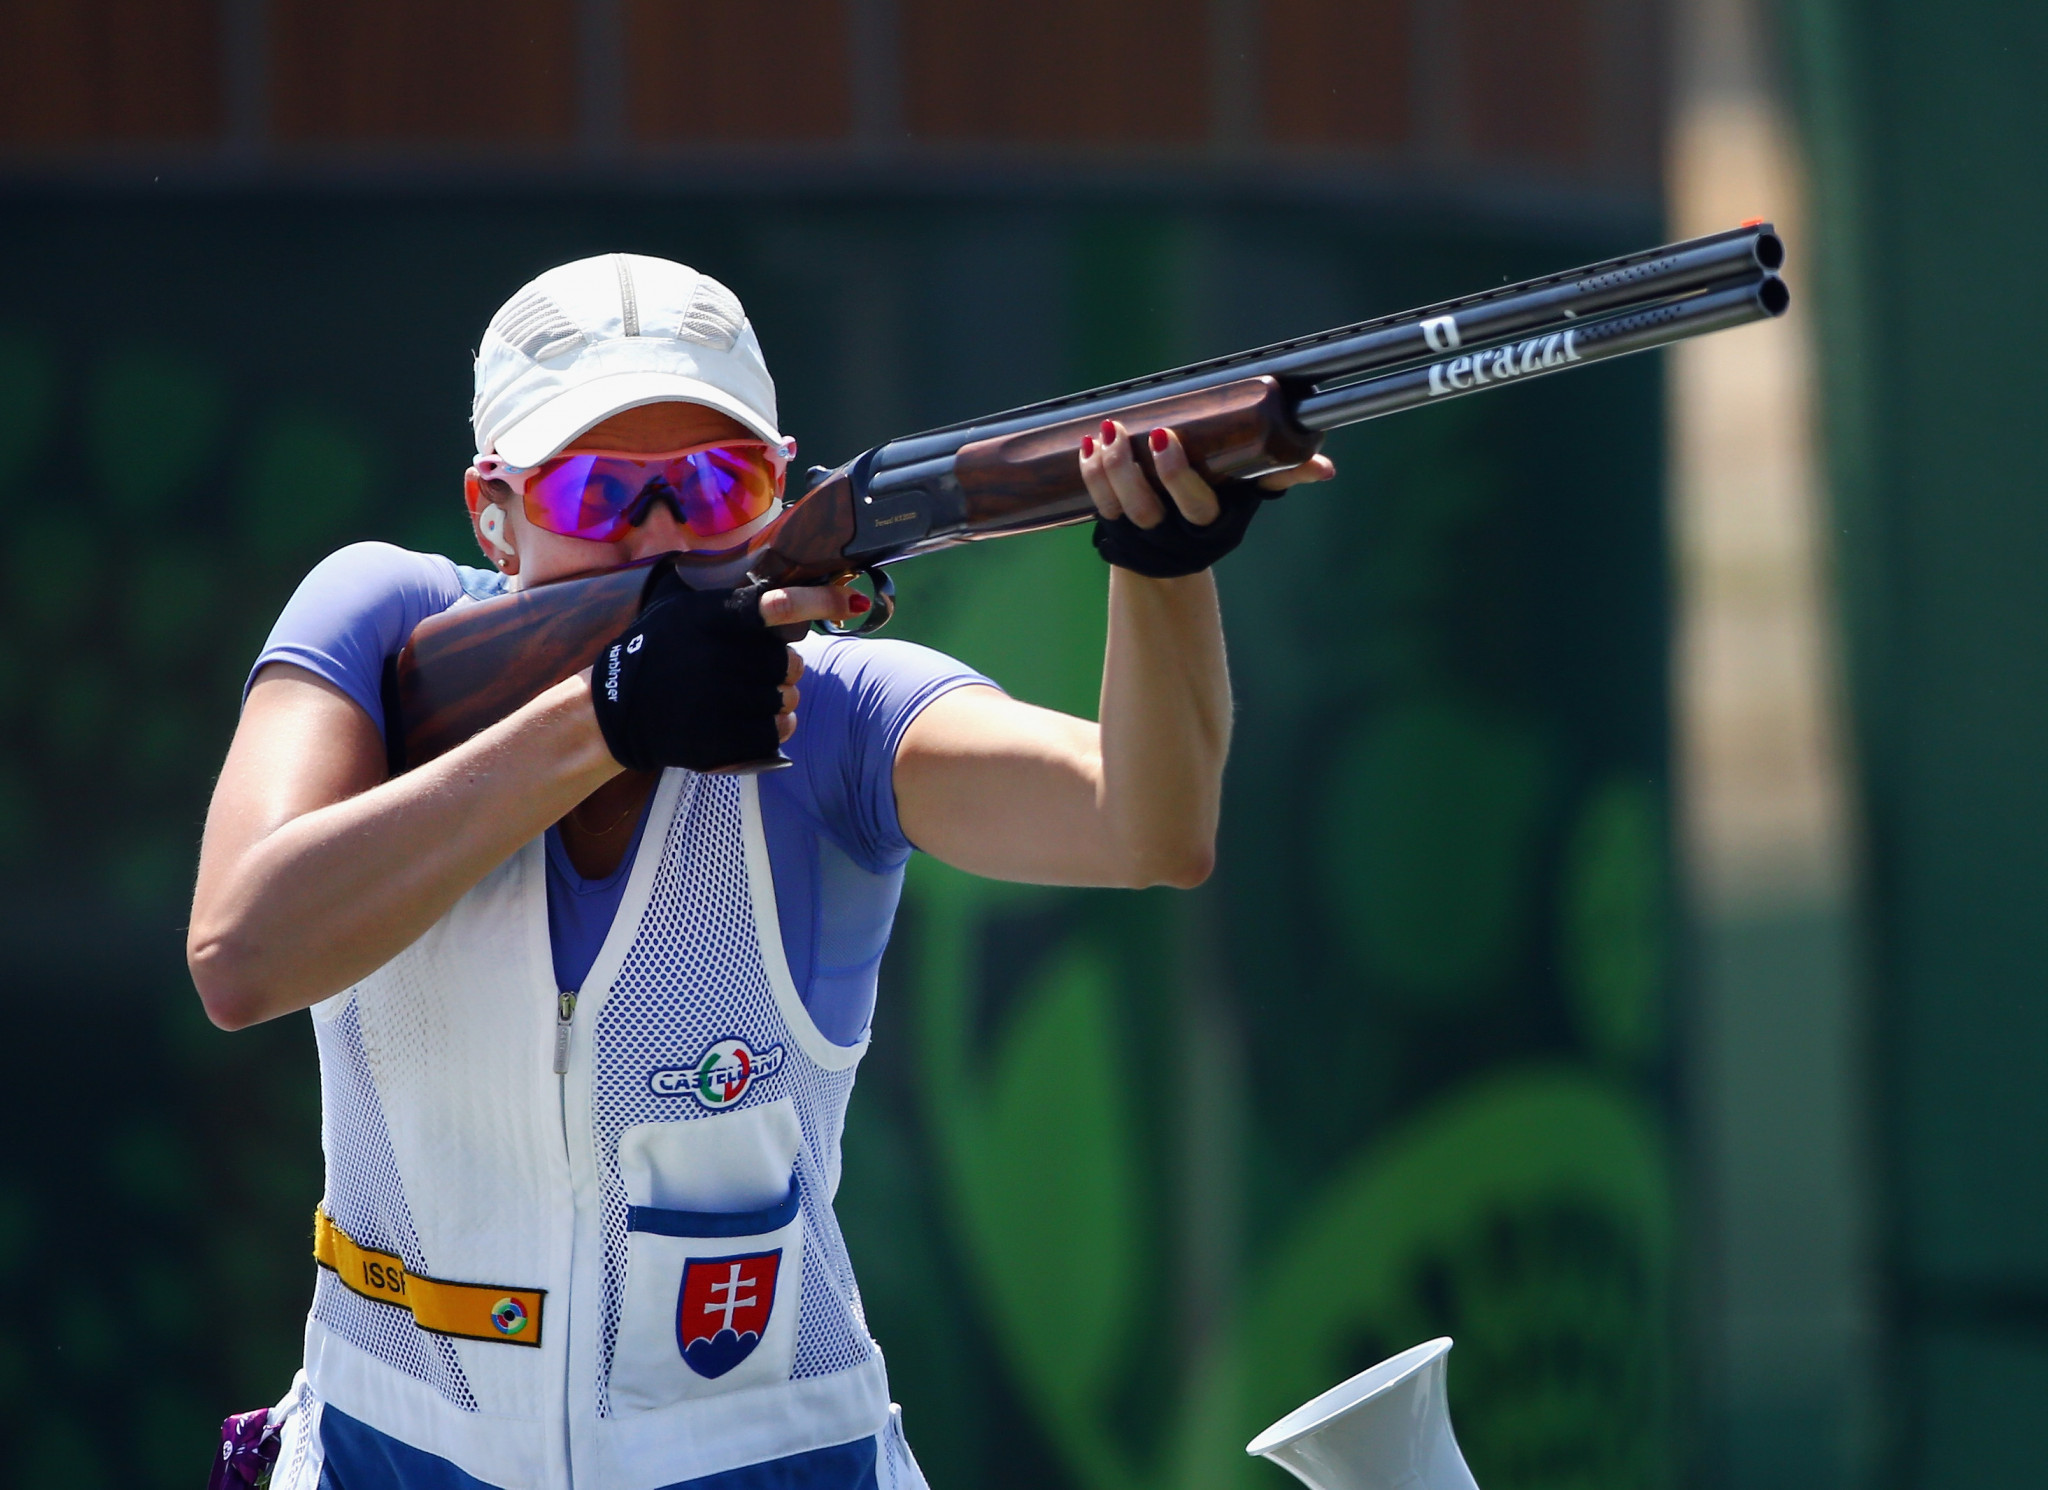 Barteková claims women's skeet crown at European Championship Shotgun